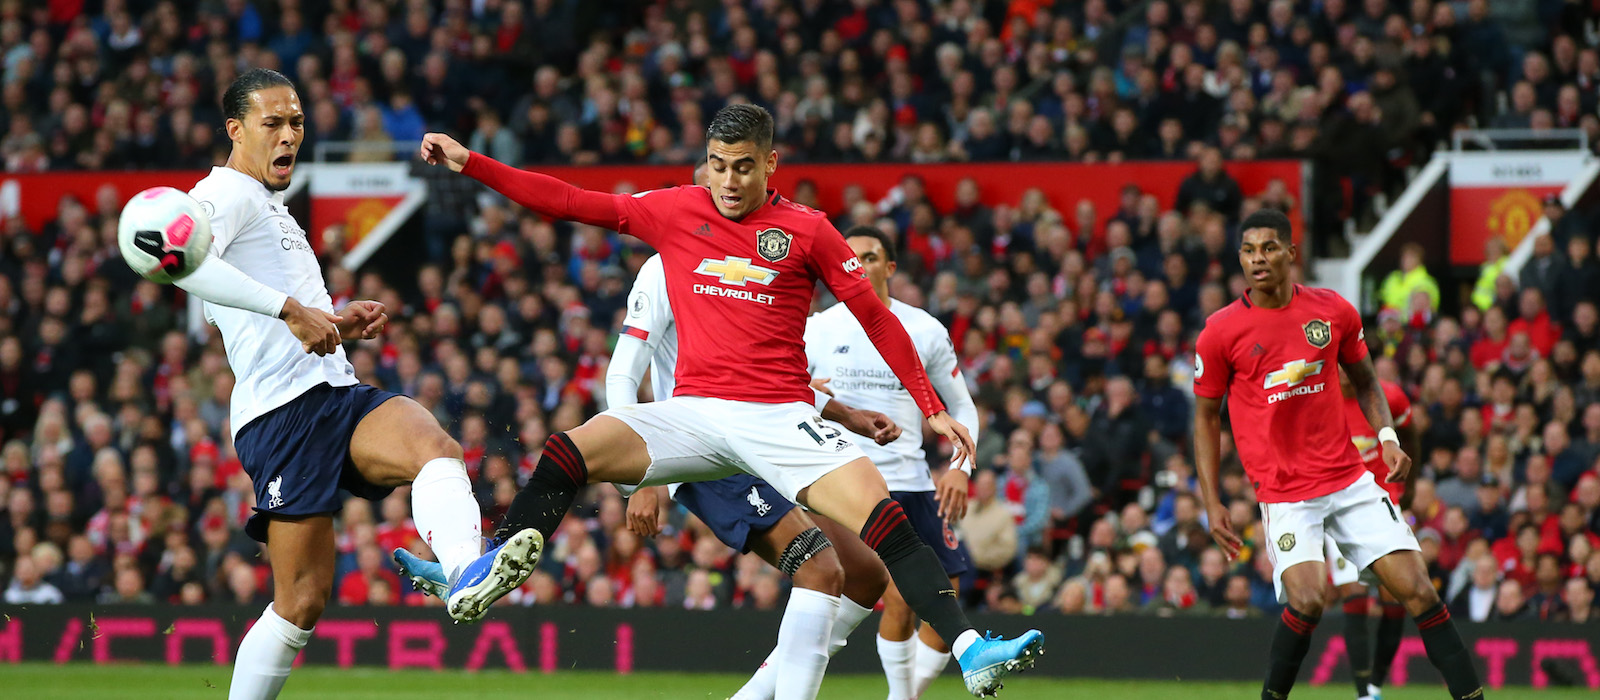 Andreas Pereira proves why he belongs at No.10 during Liverpool draw